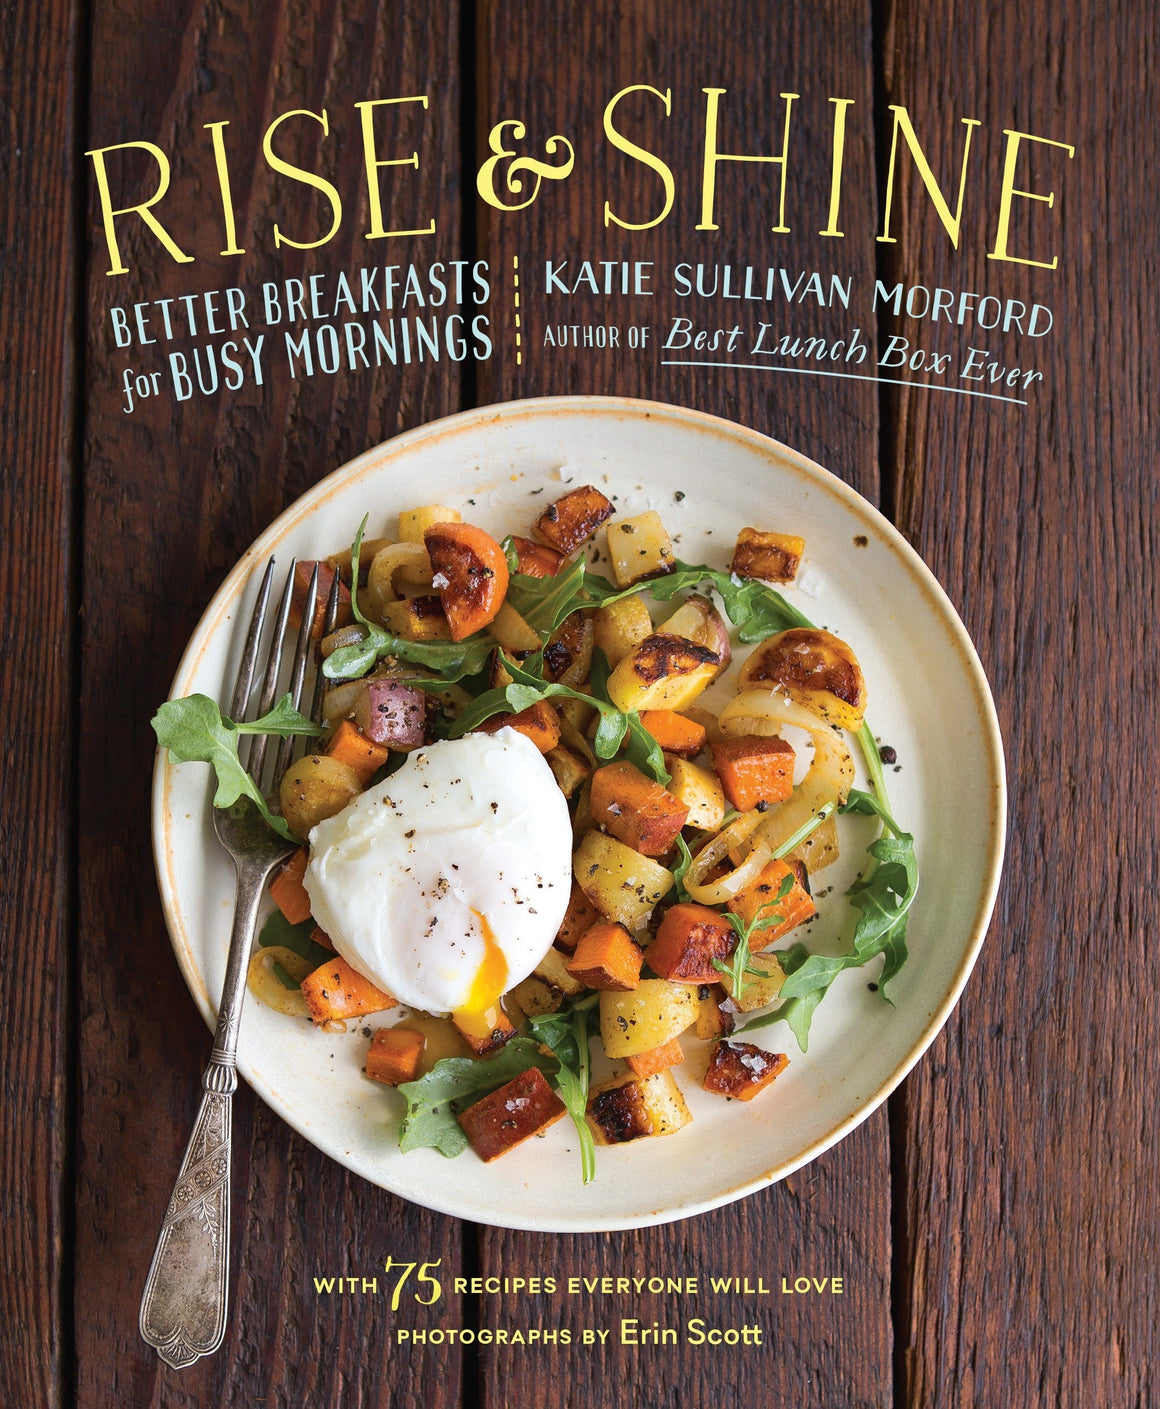 (Breakfast) Katie Sullivan Morford. Rise and Shine: Better Breakfasts for Busy Mornings.